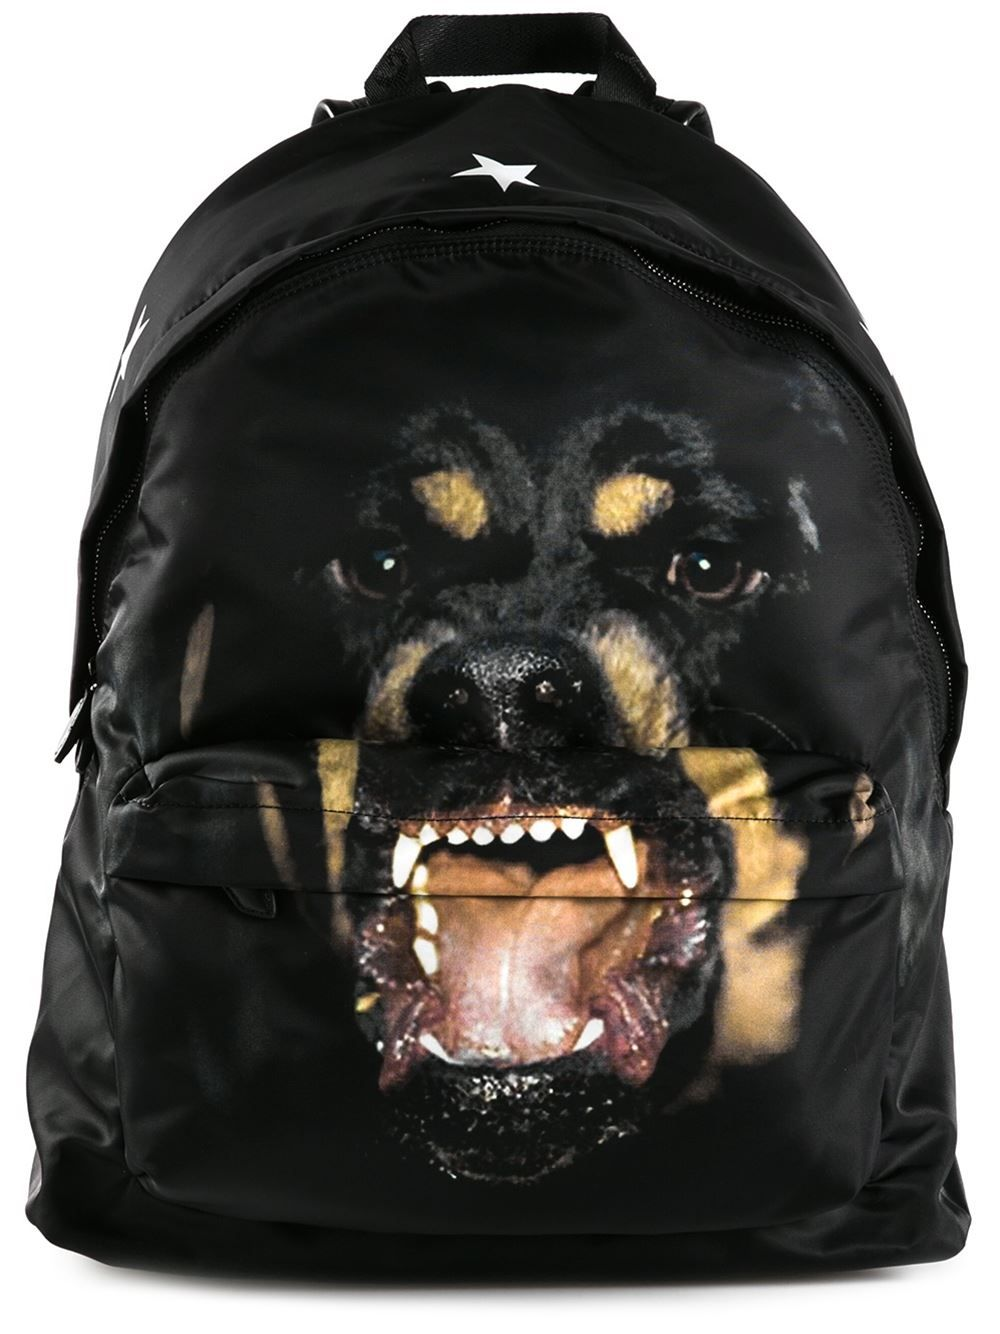 05b765e4d94d Givenchy Rottweiler Print Backpack - Twist n scout - Farfetch.com ...